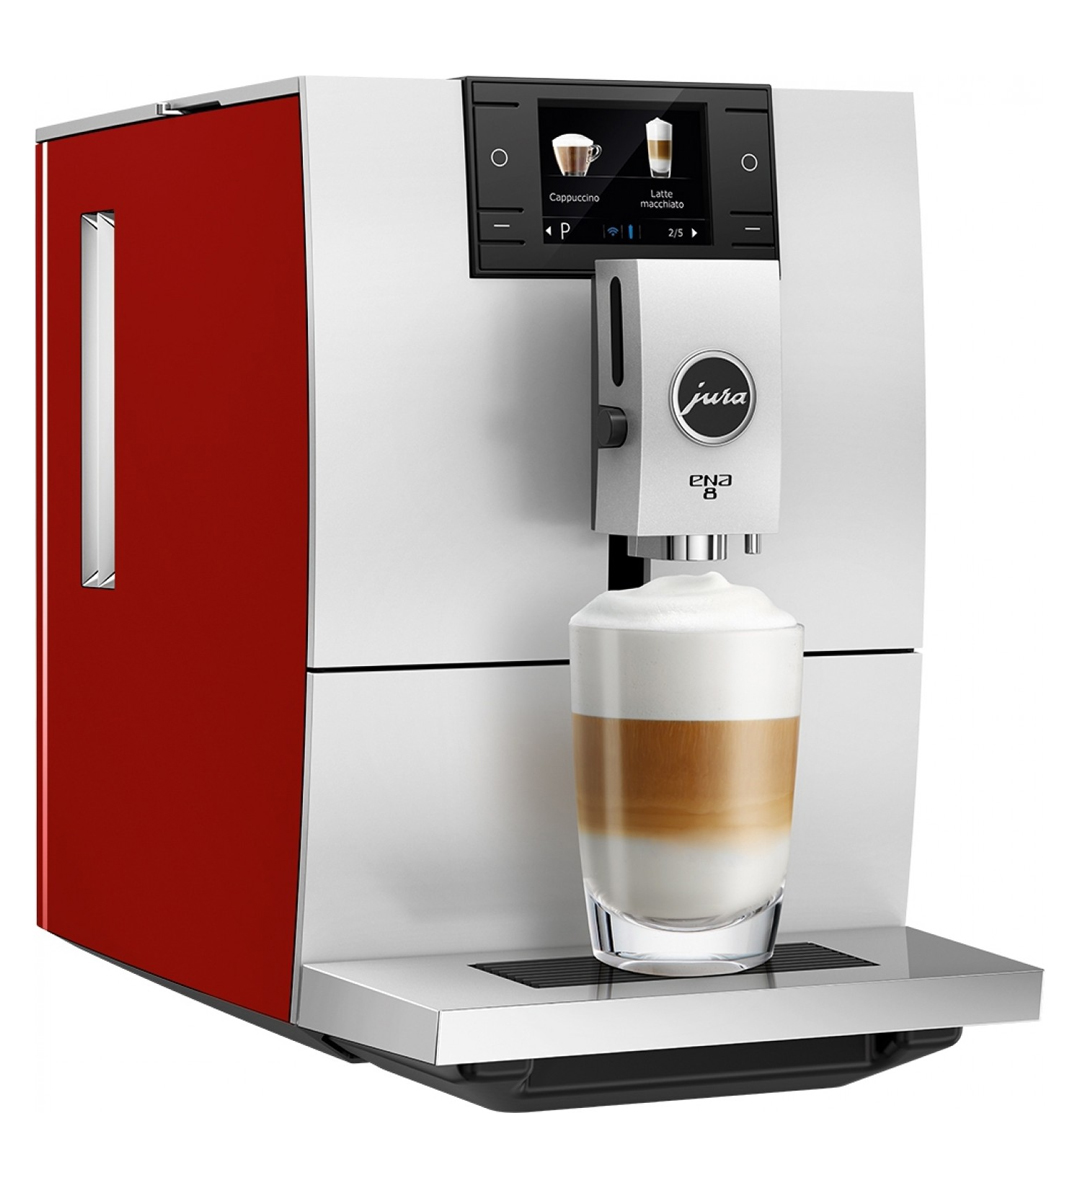 Jura Ena 8 Automatic Espresso Machine Sunset Red 15282